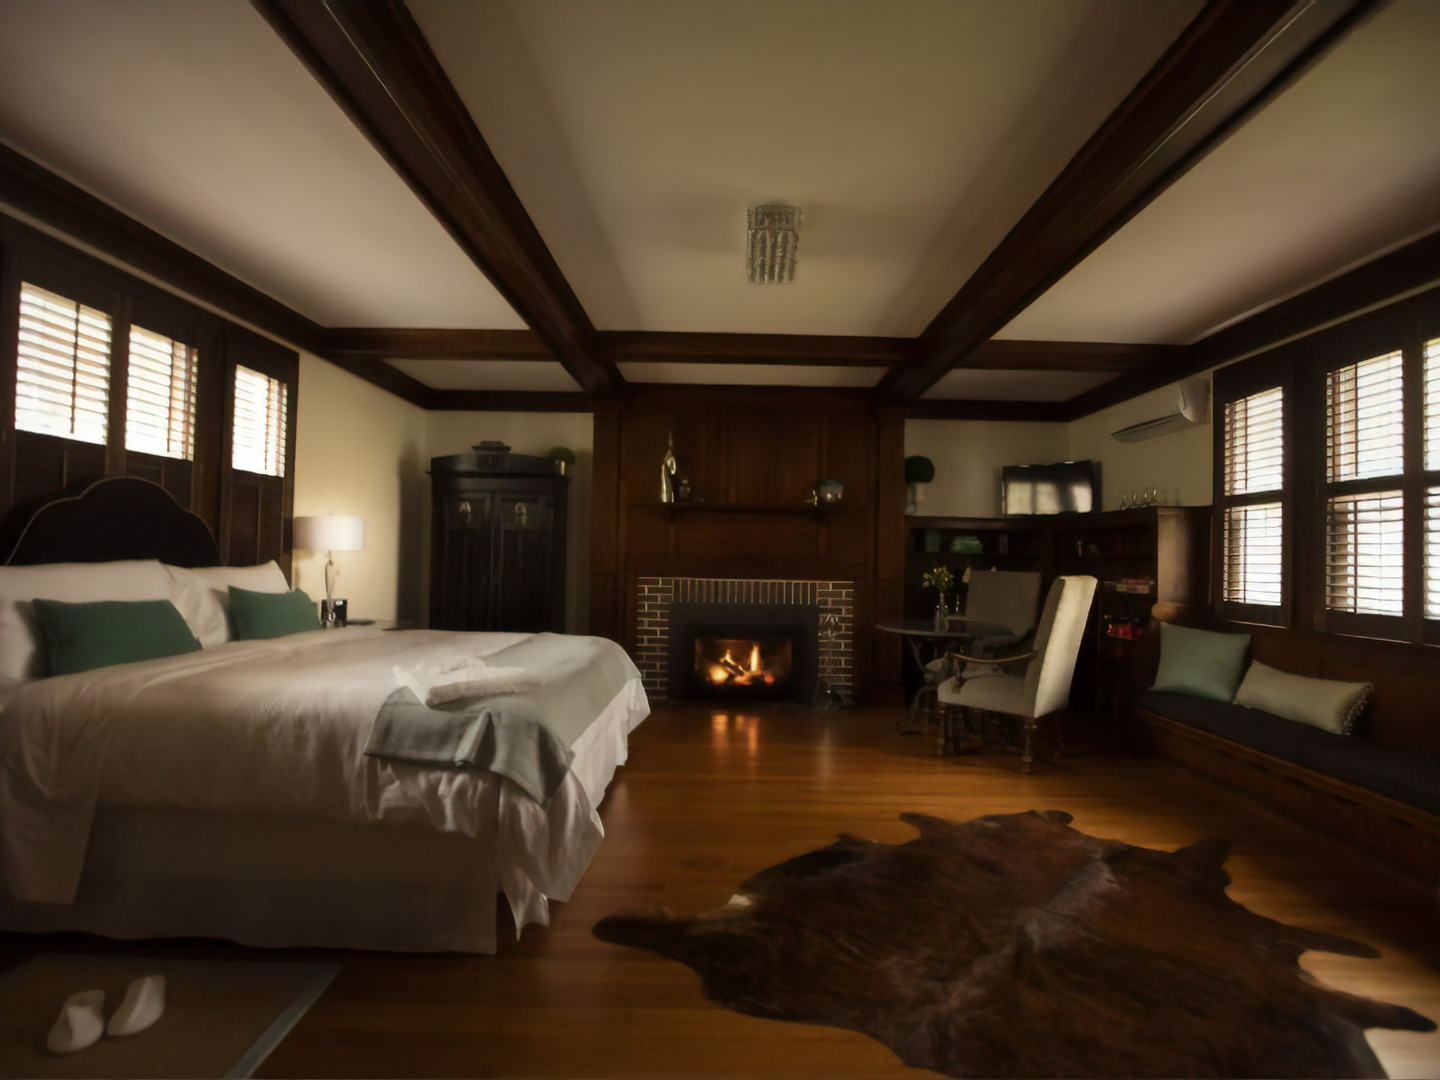 A bedroom with a large bed in a room at Nobnocket Boutique Inn.